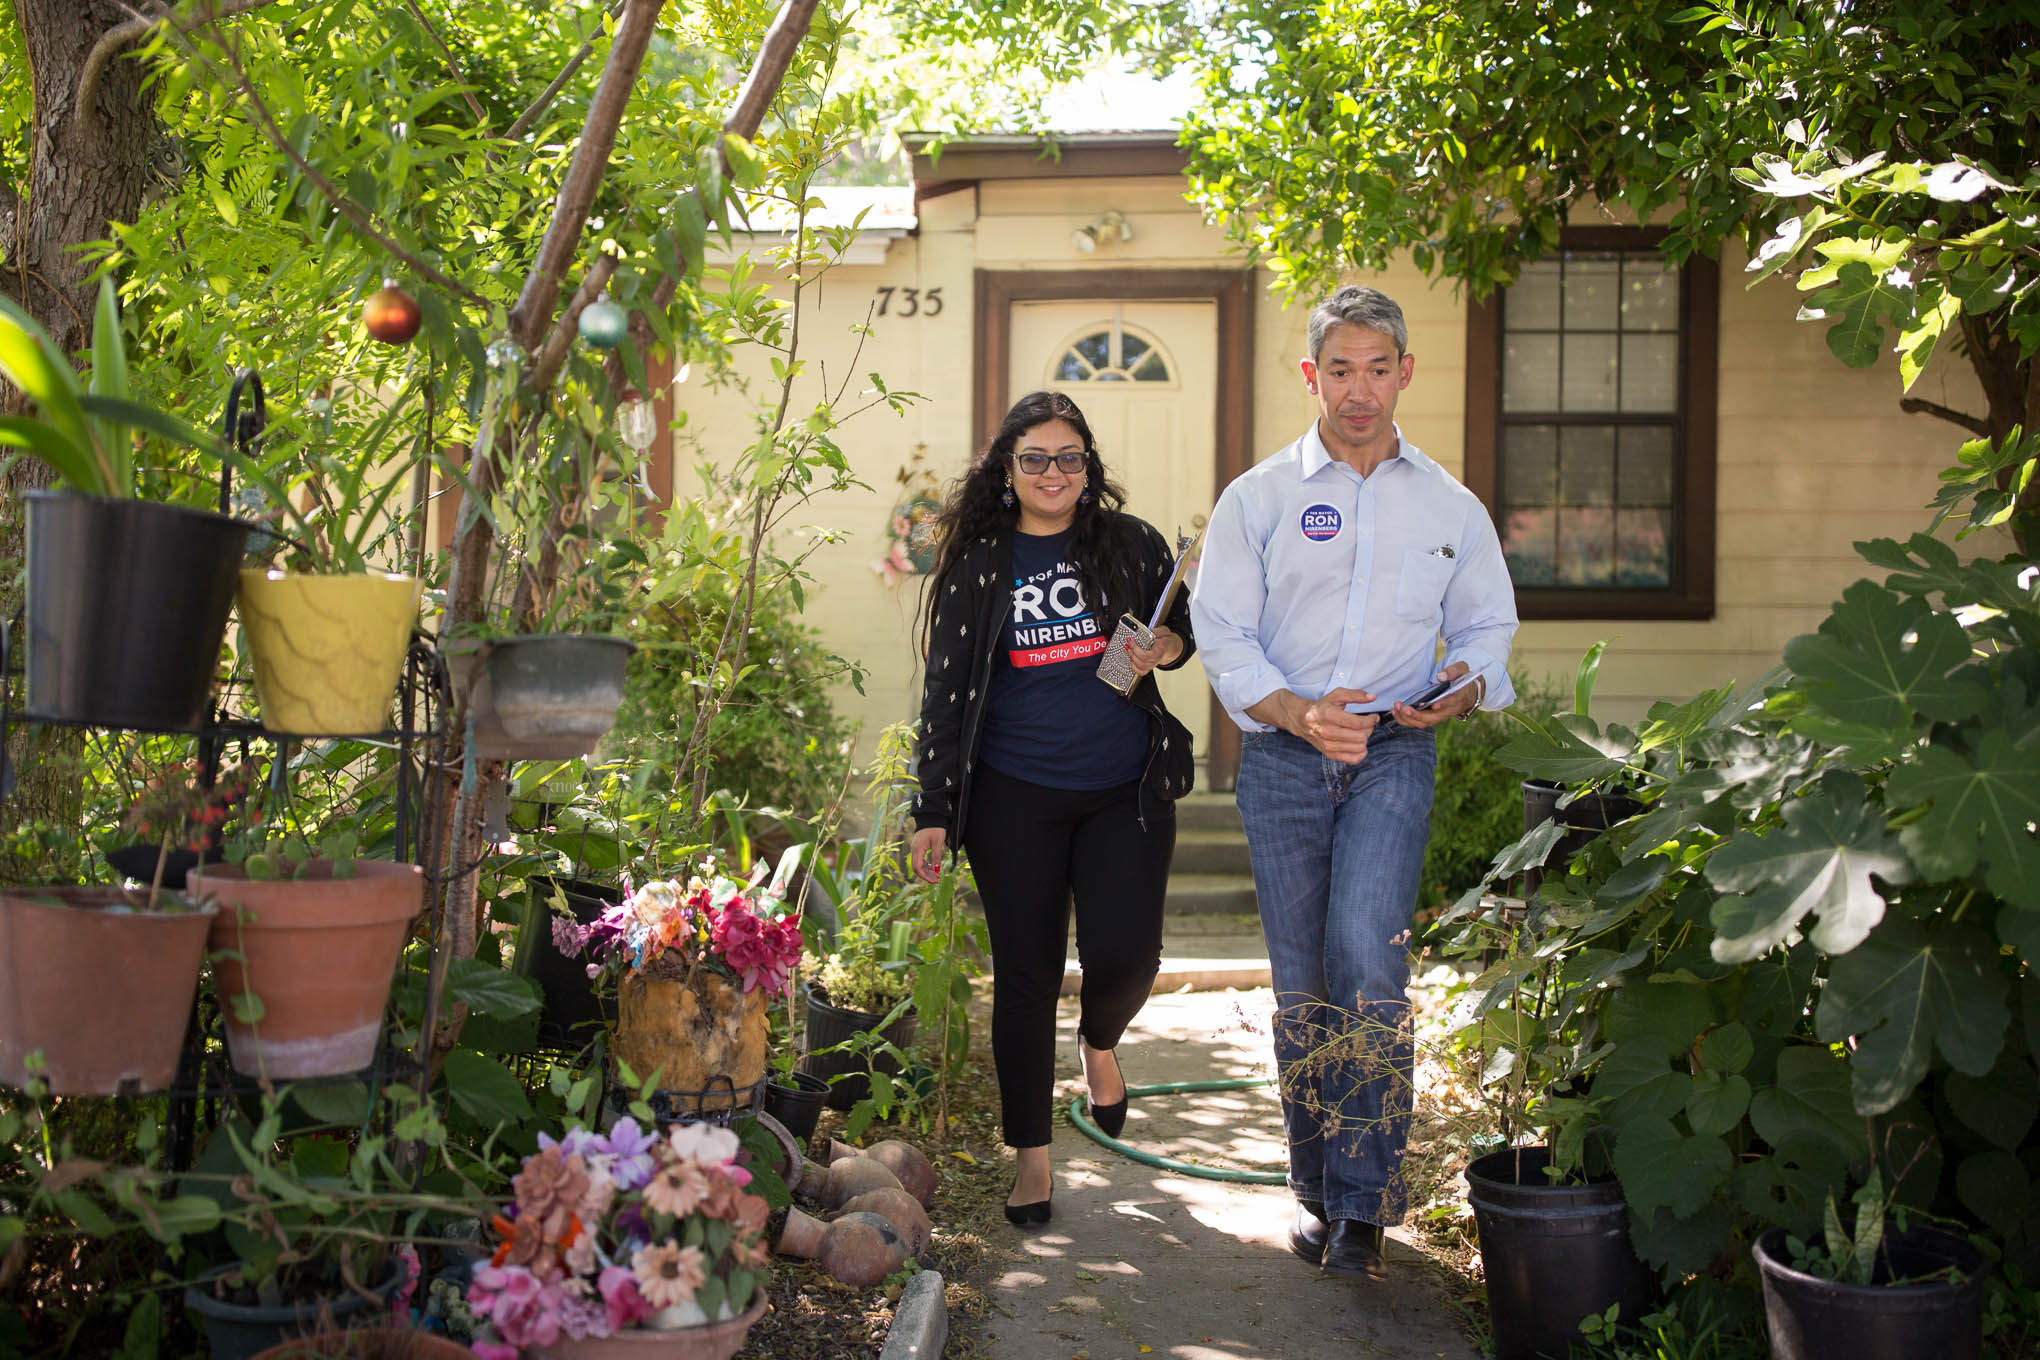 Mayor candidate Ron Nirenberg walks through a neighborhood seeking votes on election day with Deputy Campaign Manager Juany Torres.